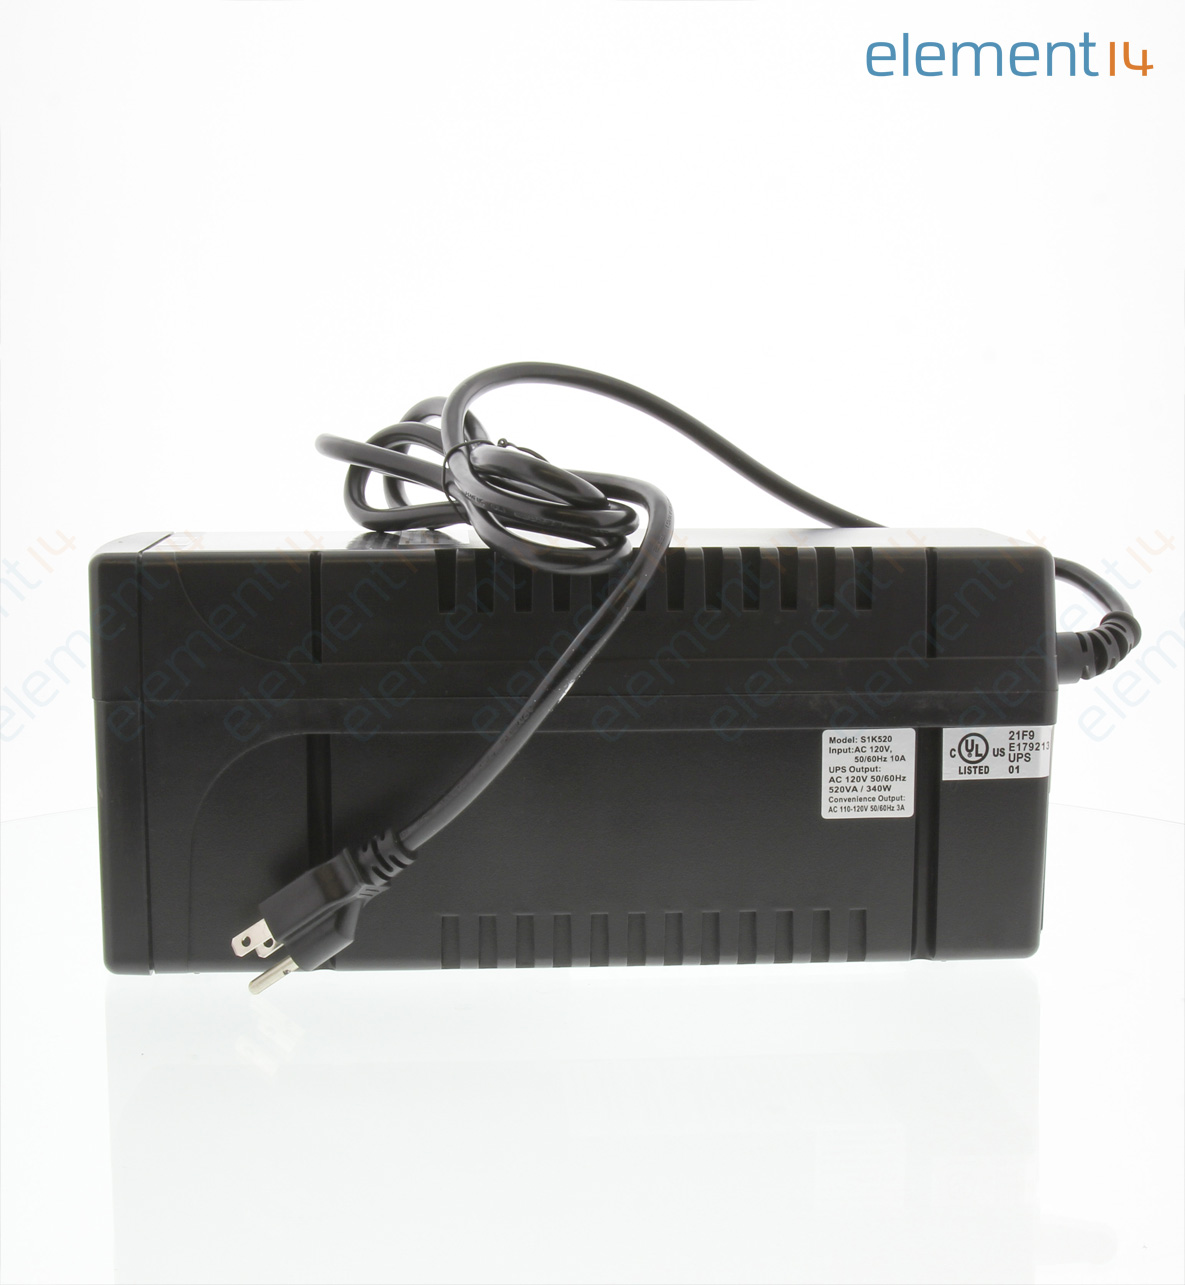 S1k520 Solahd Uninterruptible Power Supply Ups 4 Outlets Basic Circuit Diagram Add To Compare